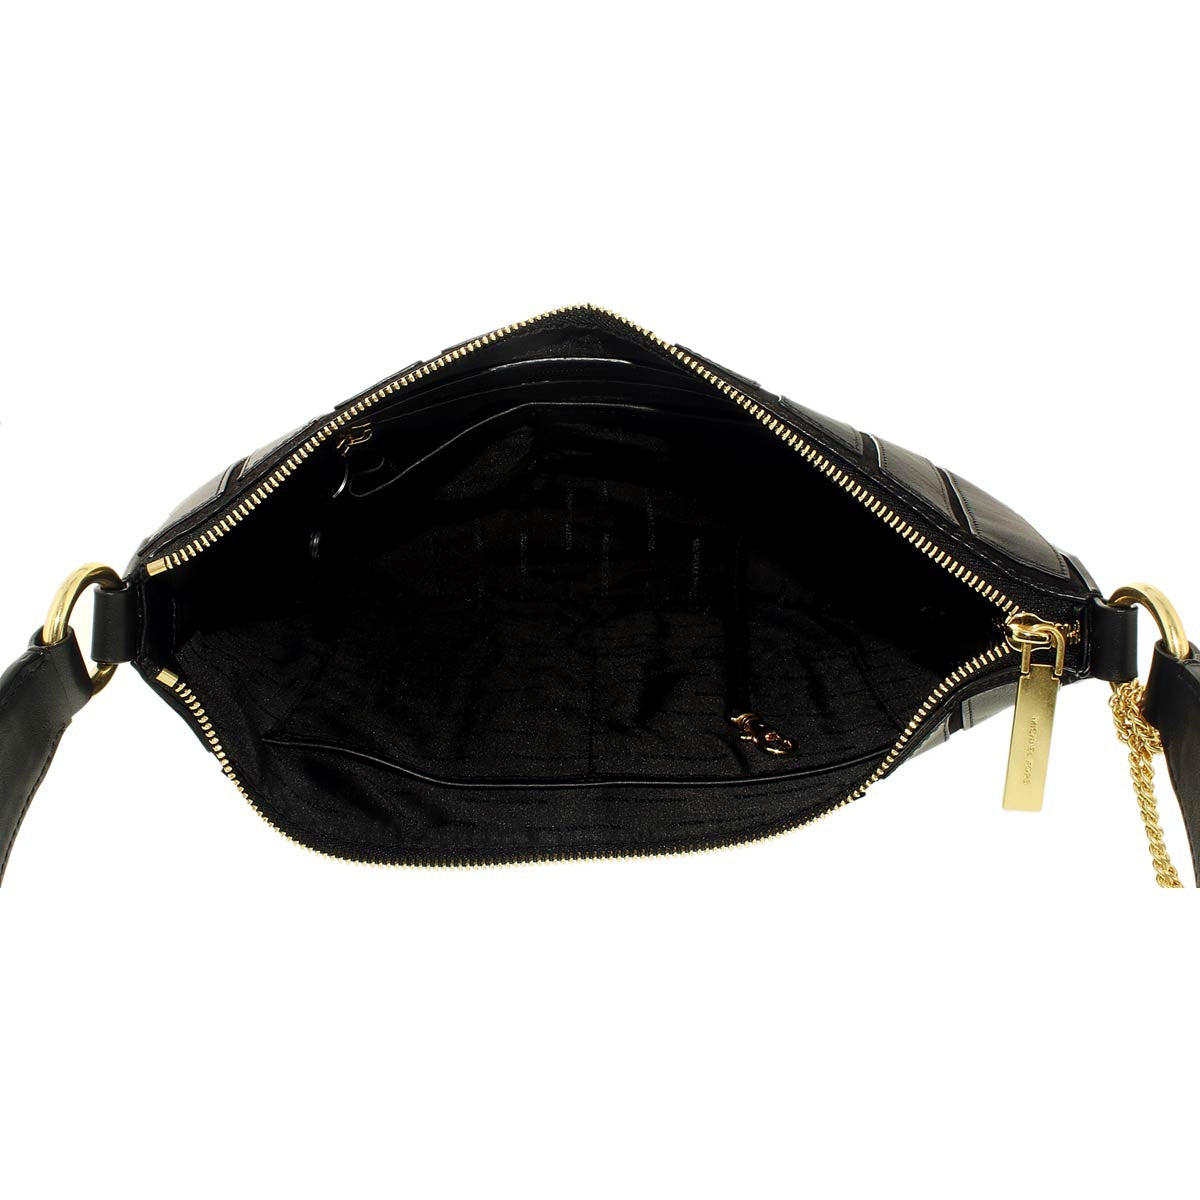 Michael Kors 30F6ABJH6S-001 Women's Brooklyn Applique Black Suede Leather Convertible Medium Hobo